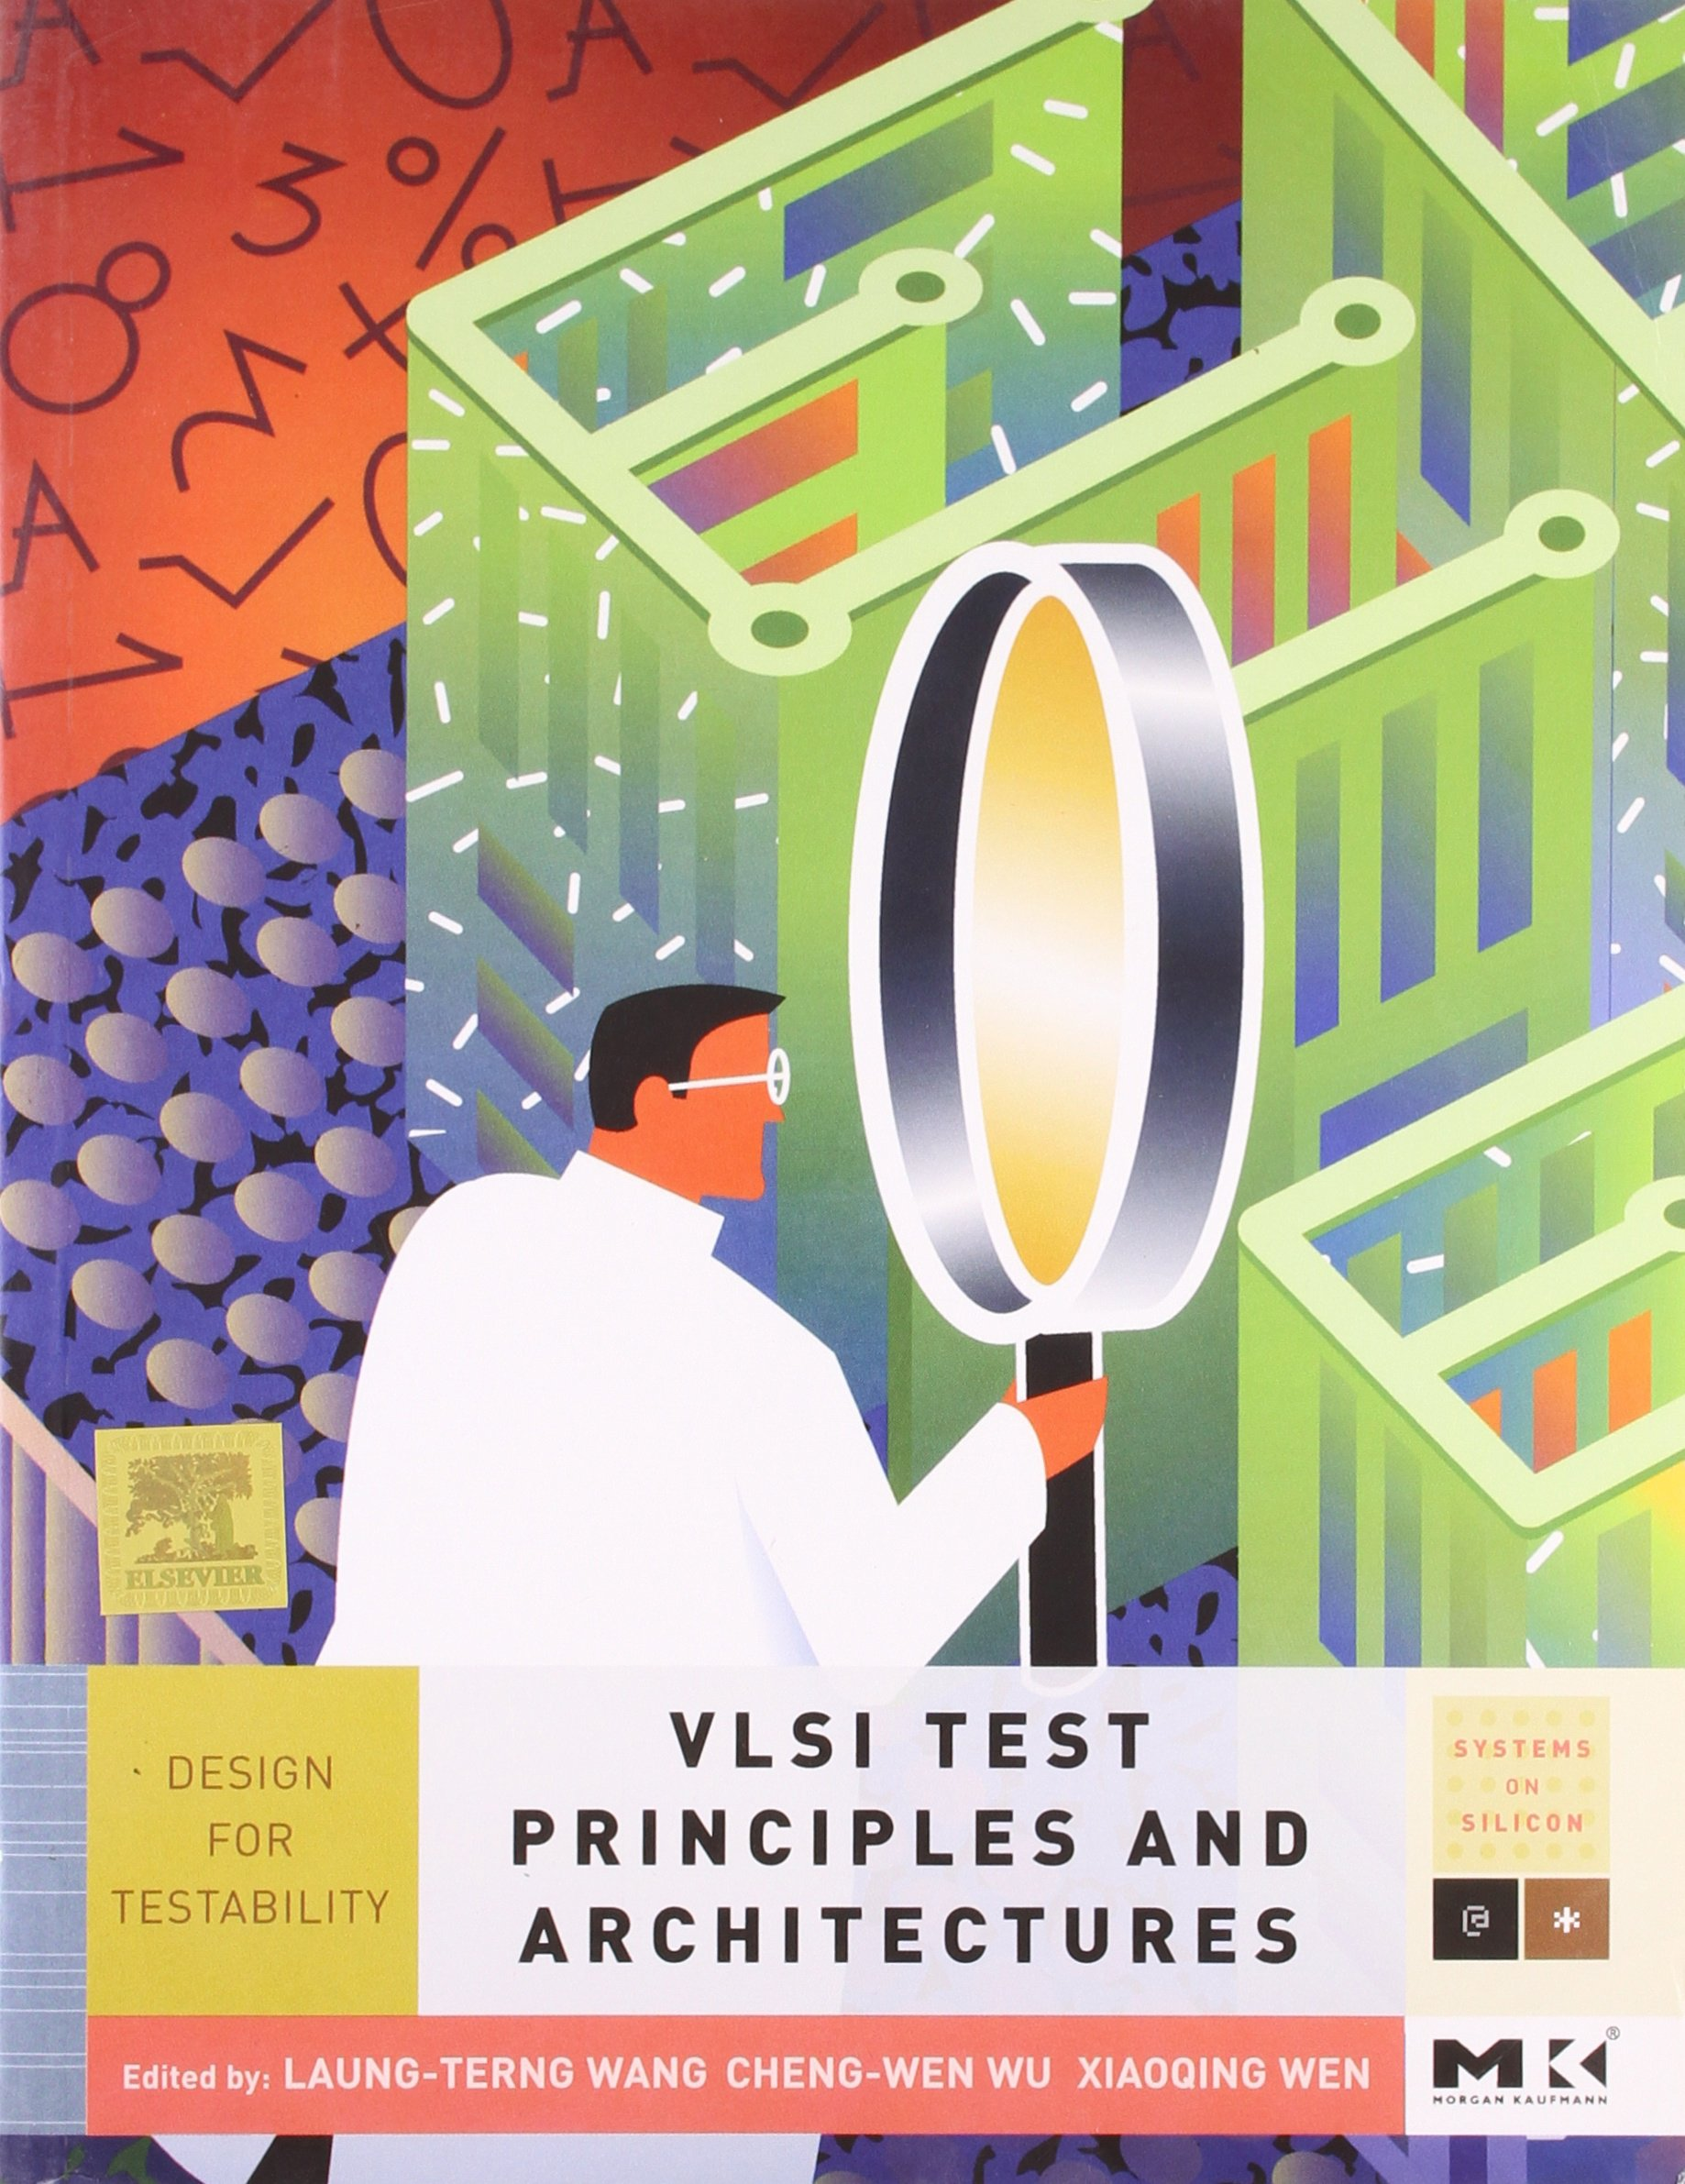 Testing Of Vlsi Circuit Buy Test Principles And Architectures Design For Testability Book Online At Low Prices In India